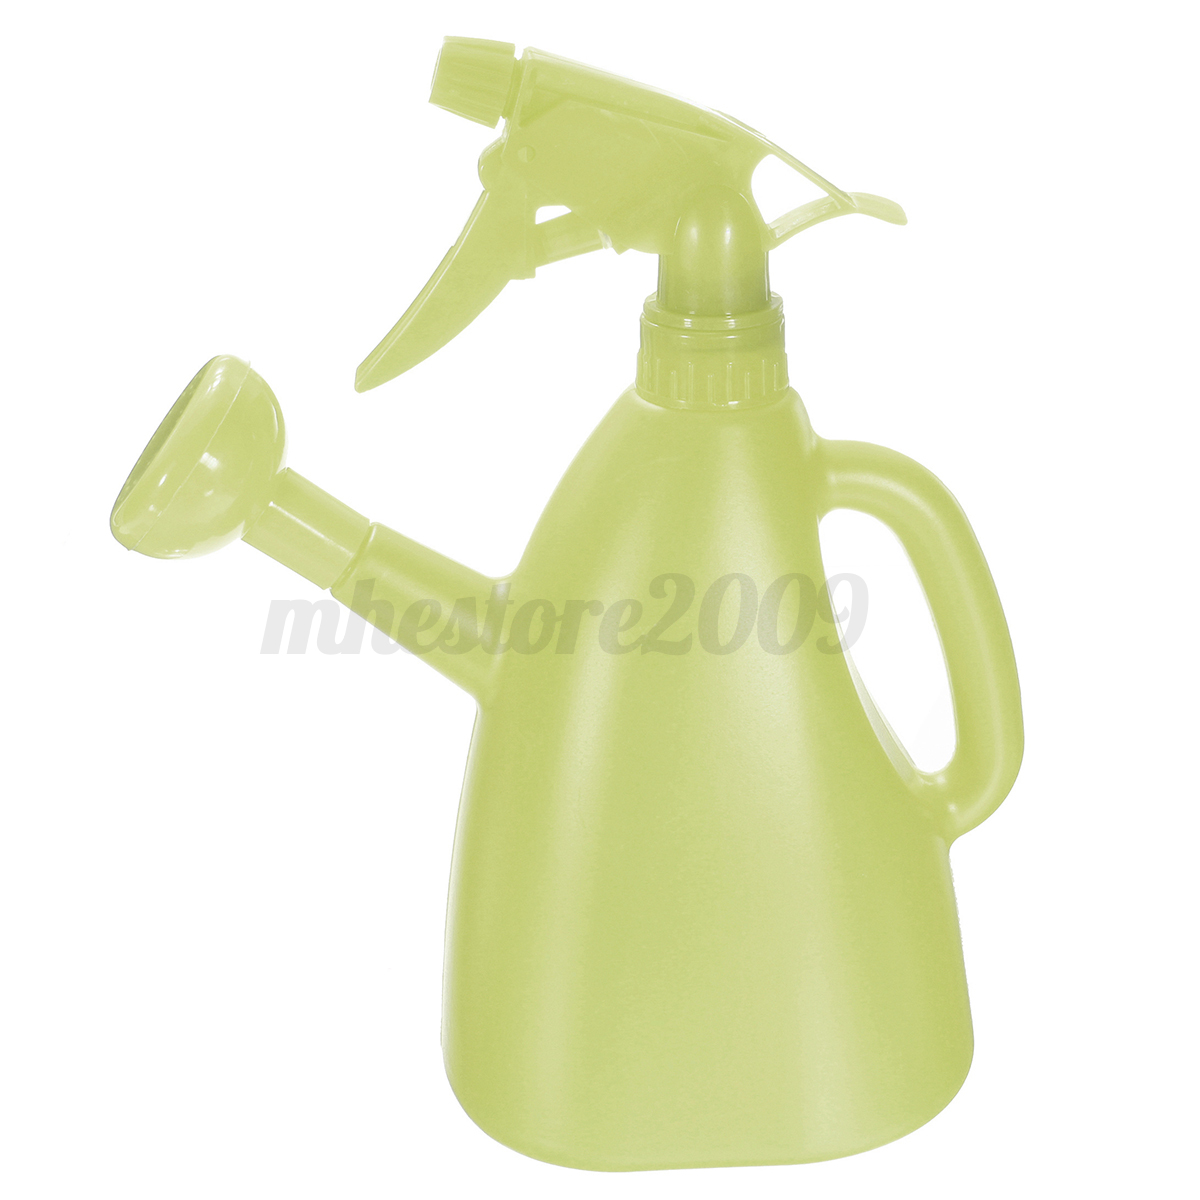 Plant Watering Cans Water Sprayer Plants Watering Can Container Outdoor Garden